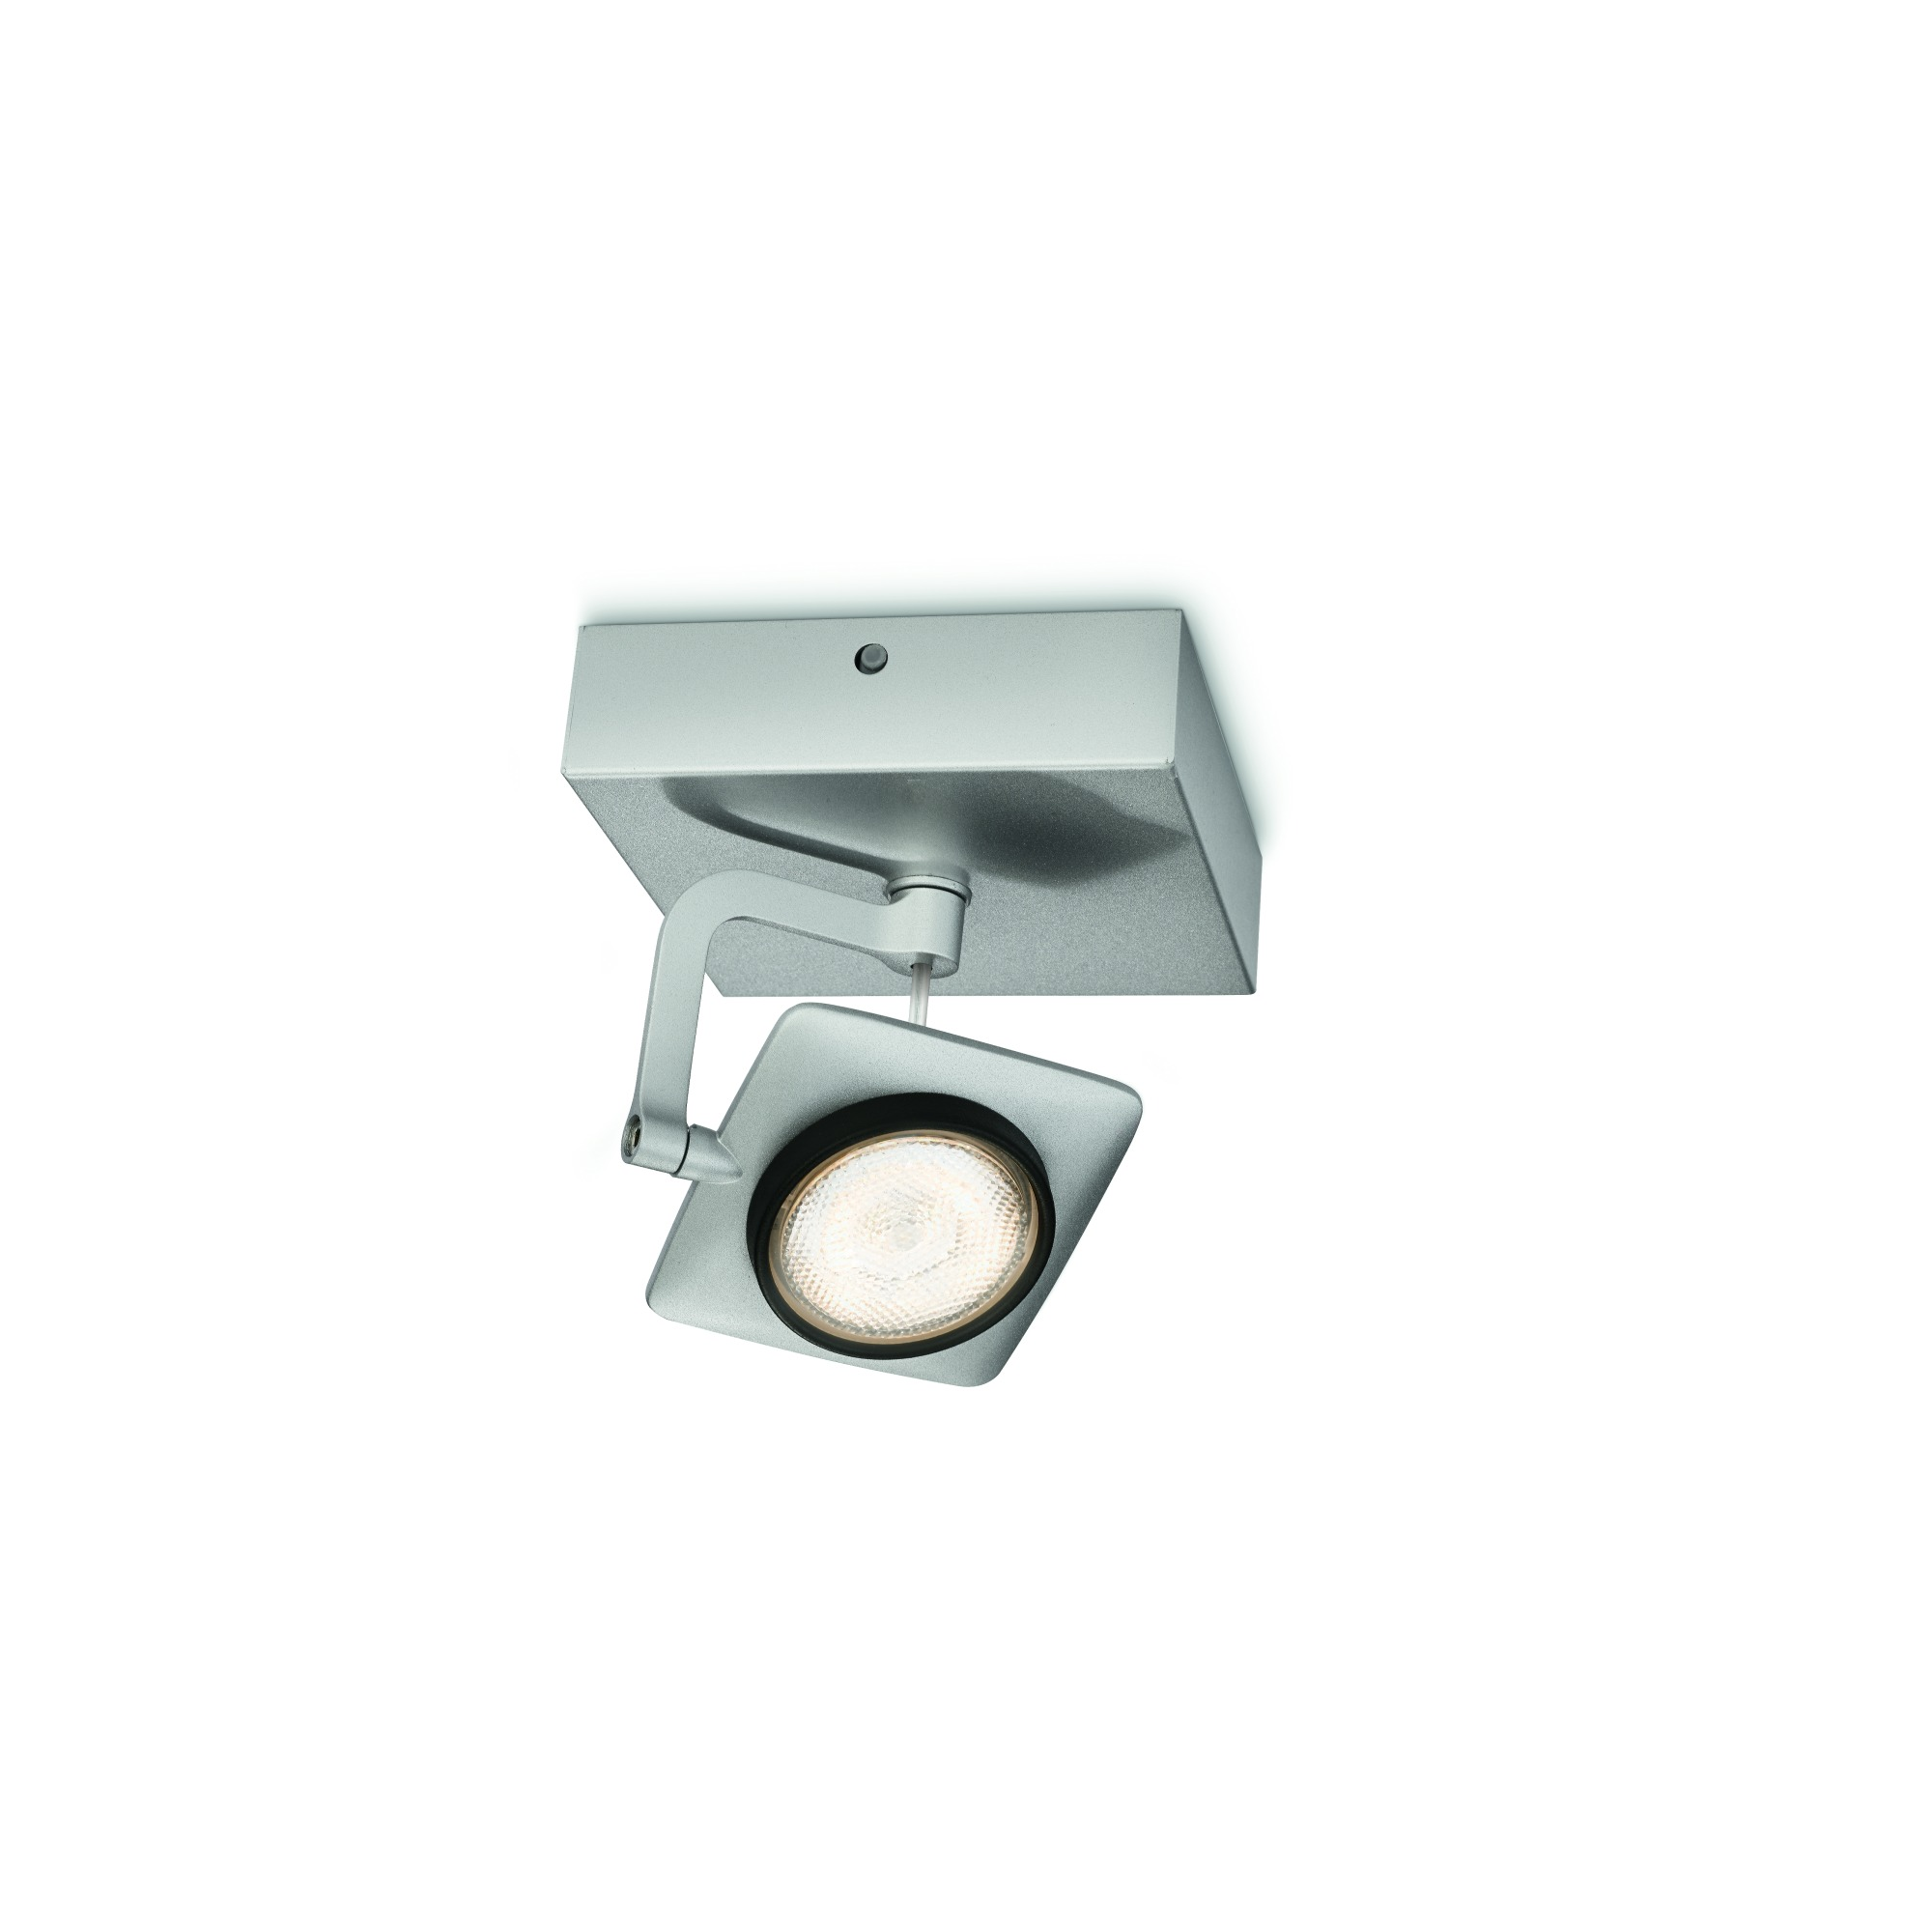 MILLENNIUM LED wandspot MyLiving by Philips 53190-48-16